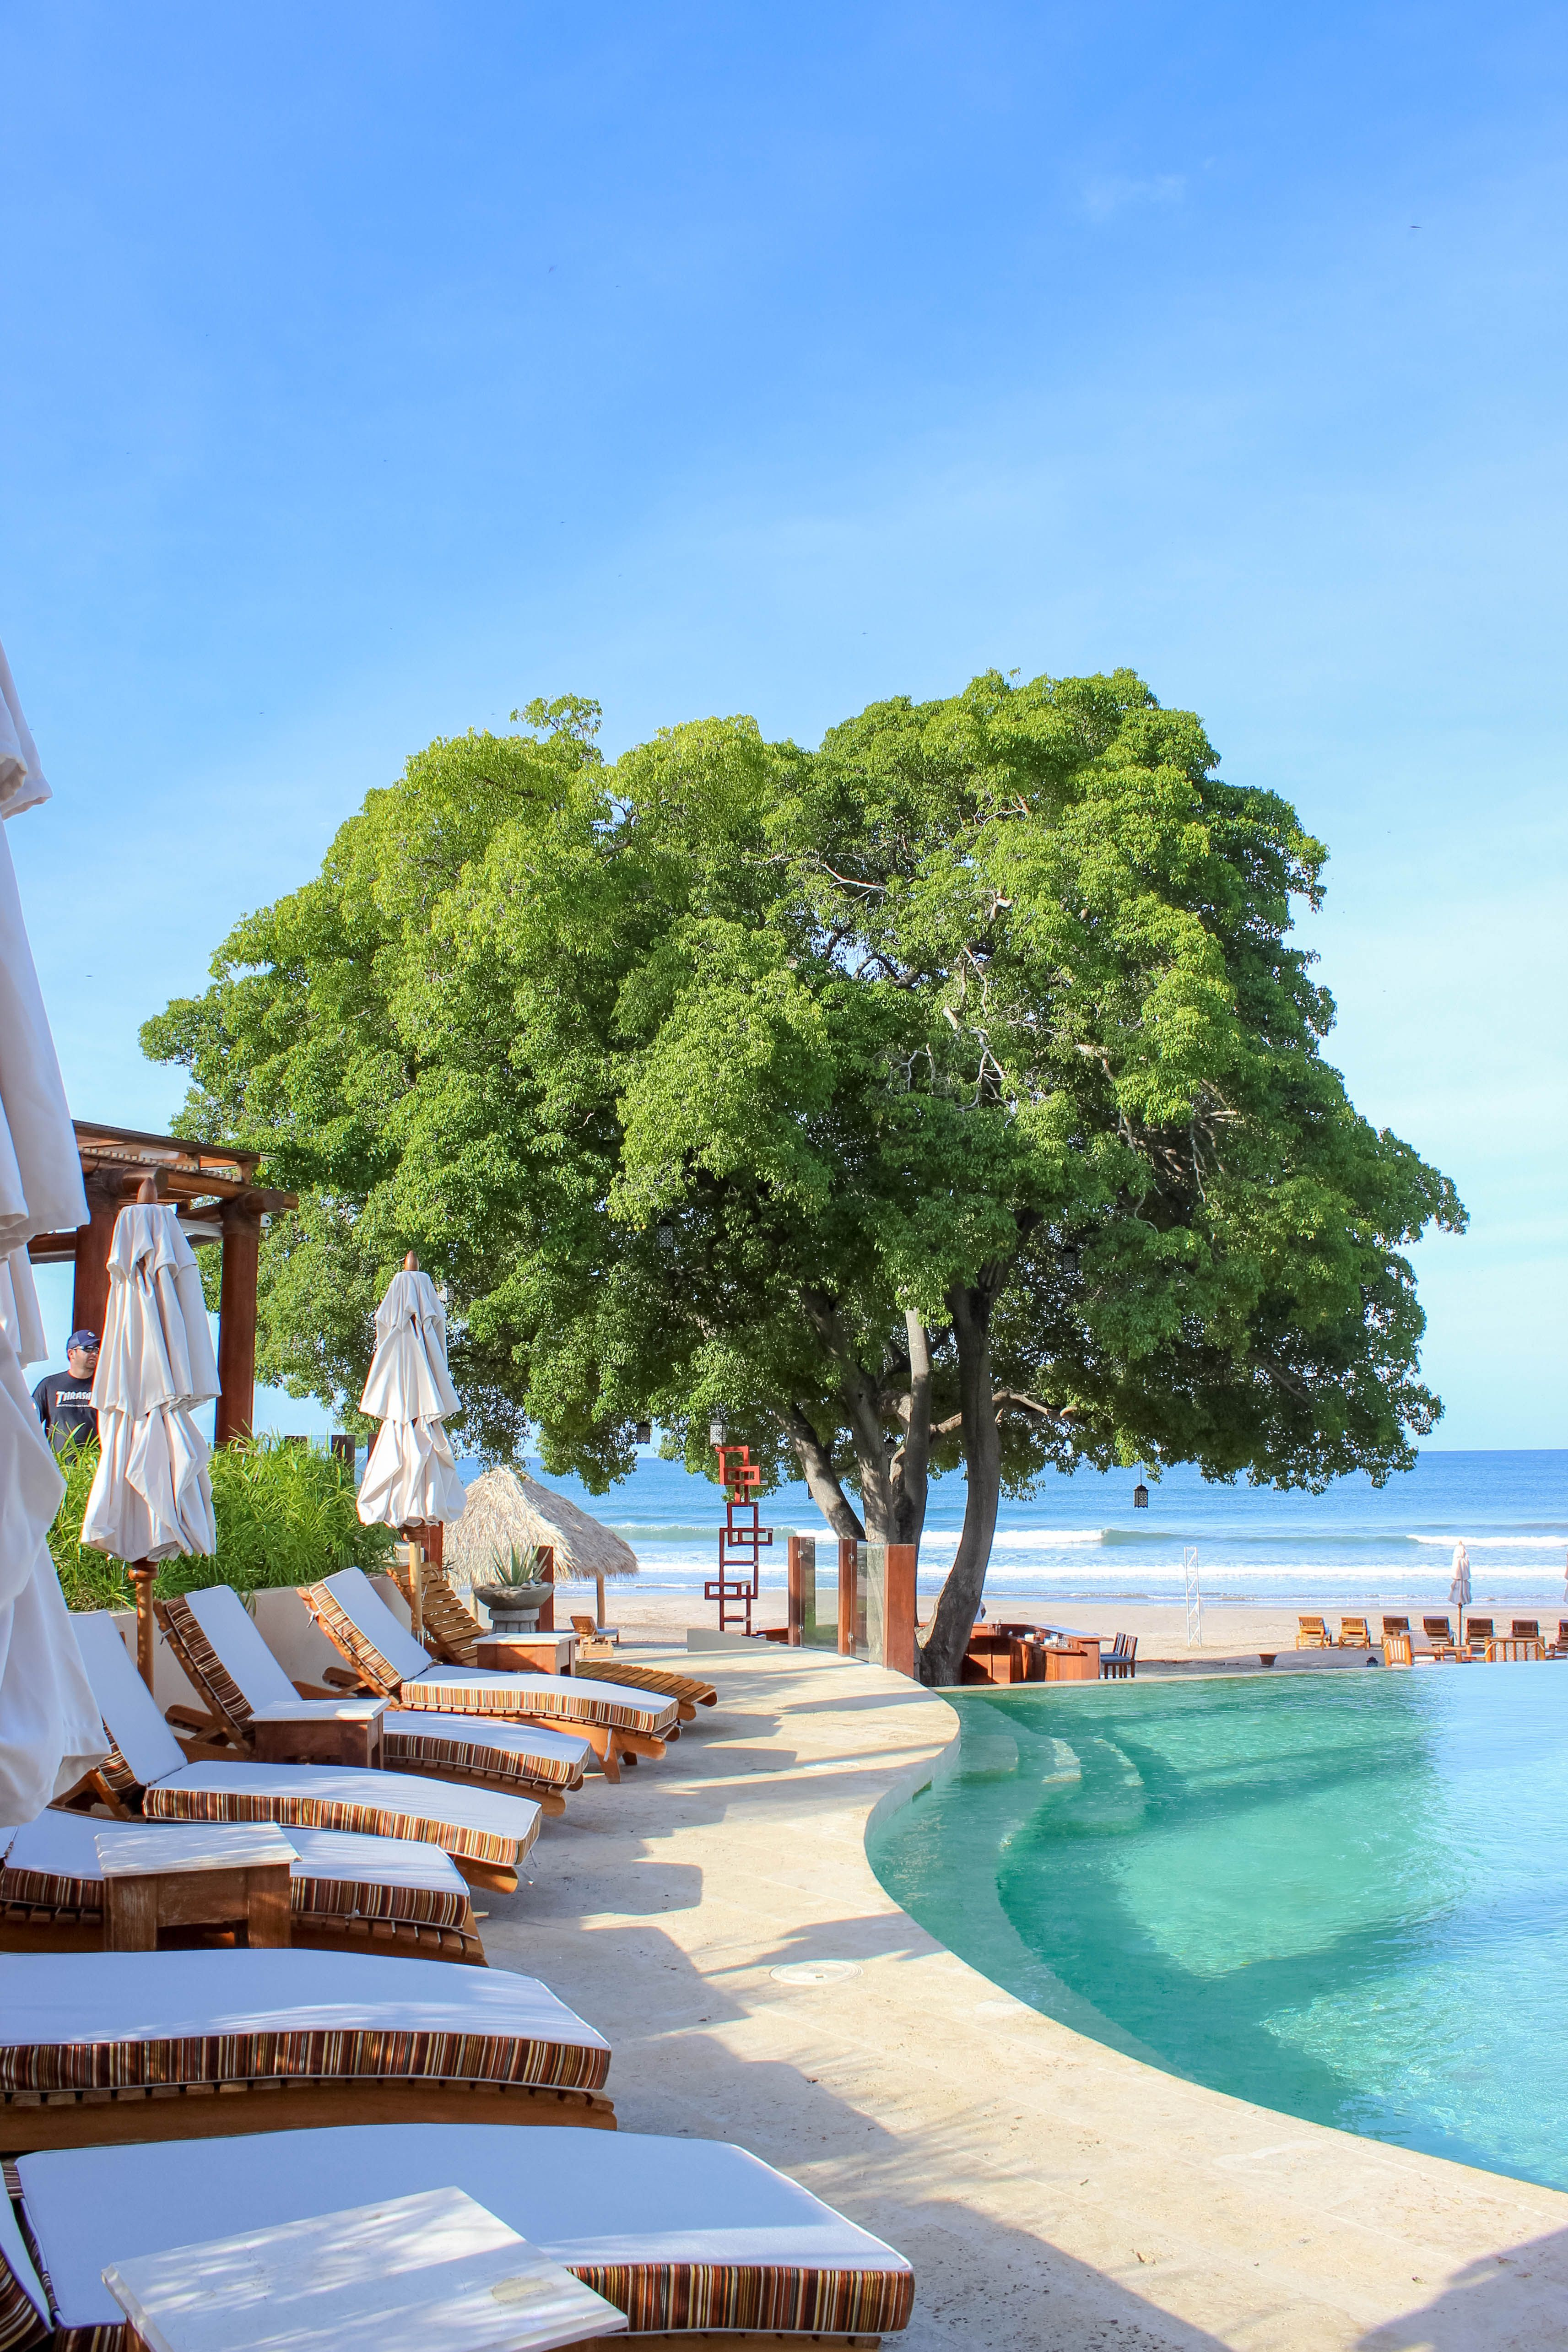 Best Hotels In The World Hotel Latin America Surfing Nicaragua Pacific Beach Vacation Ideas Golf Resorts Luxury Resort And Spa